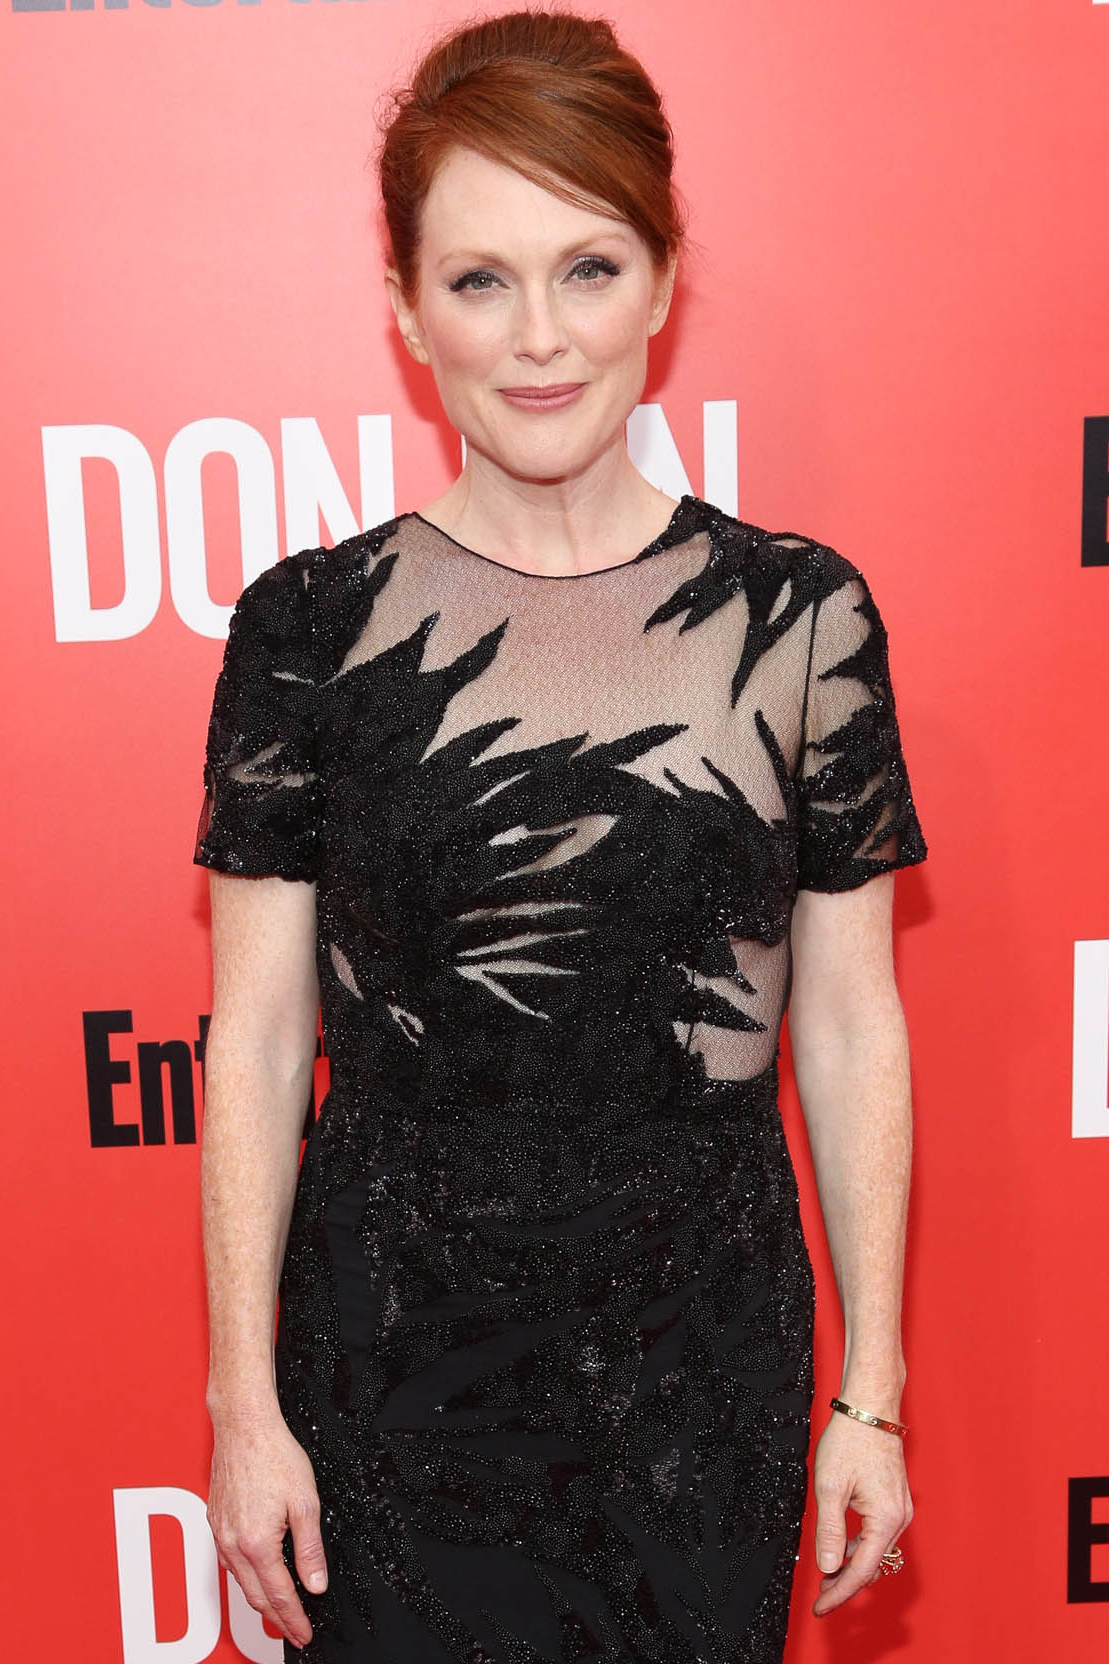 Julianne Moore as President Alma Coin